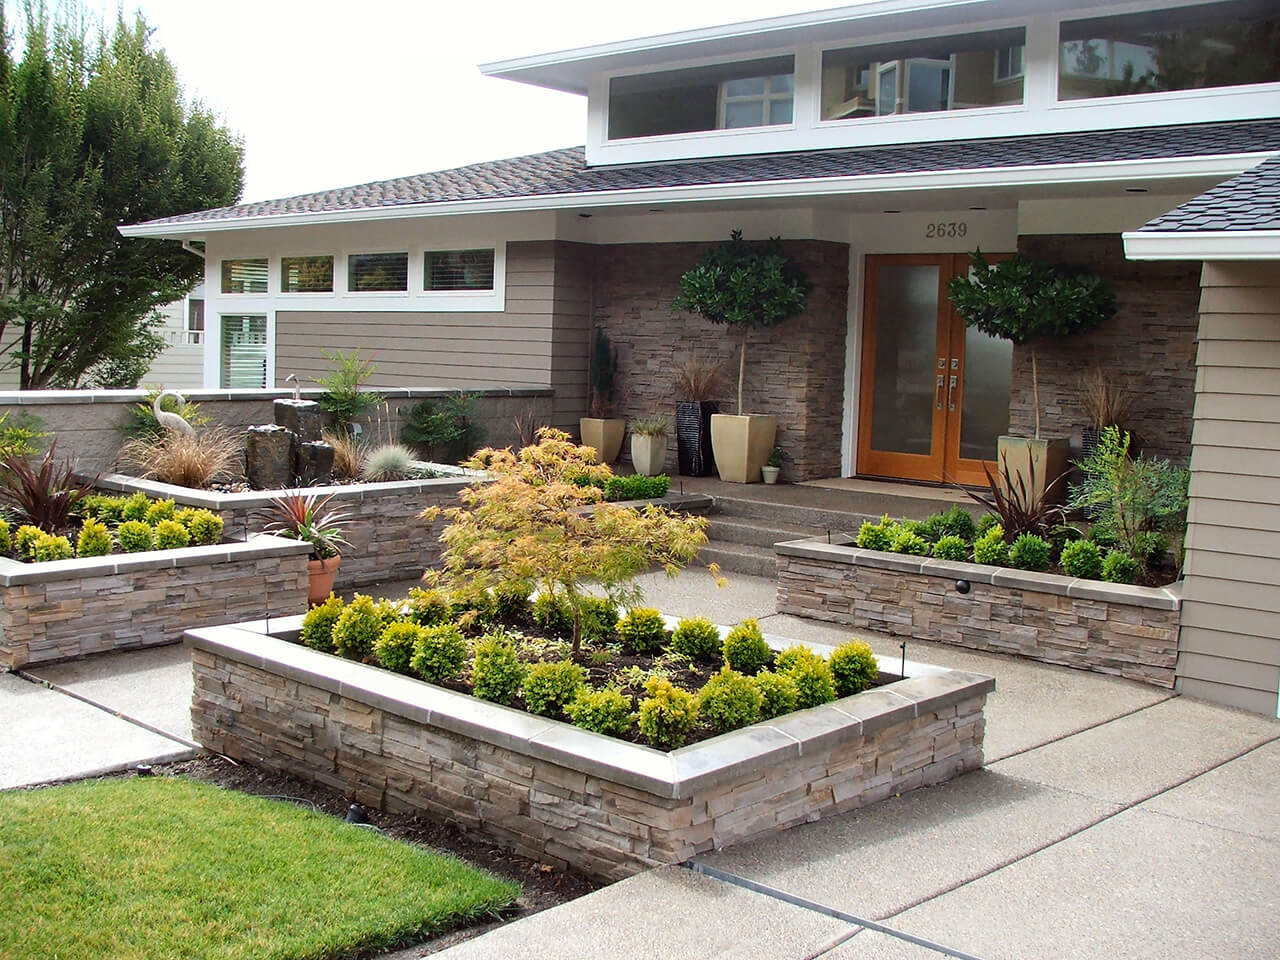 50 best front yard landscaping ideas and garden designs for The best front yard landscaping